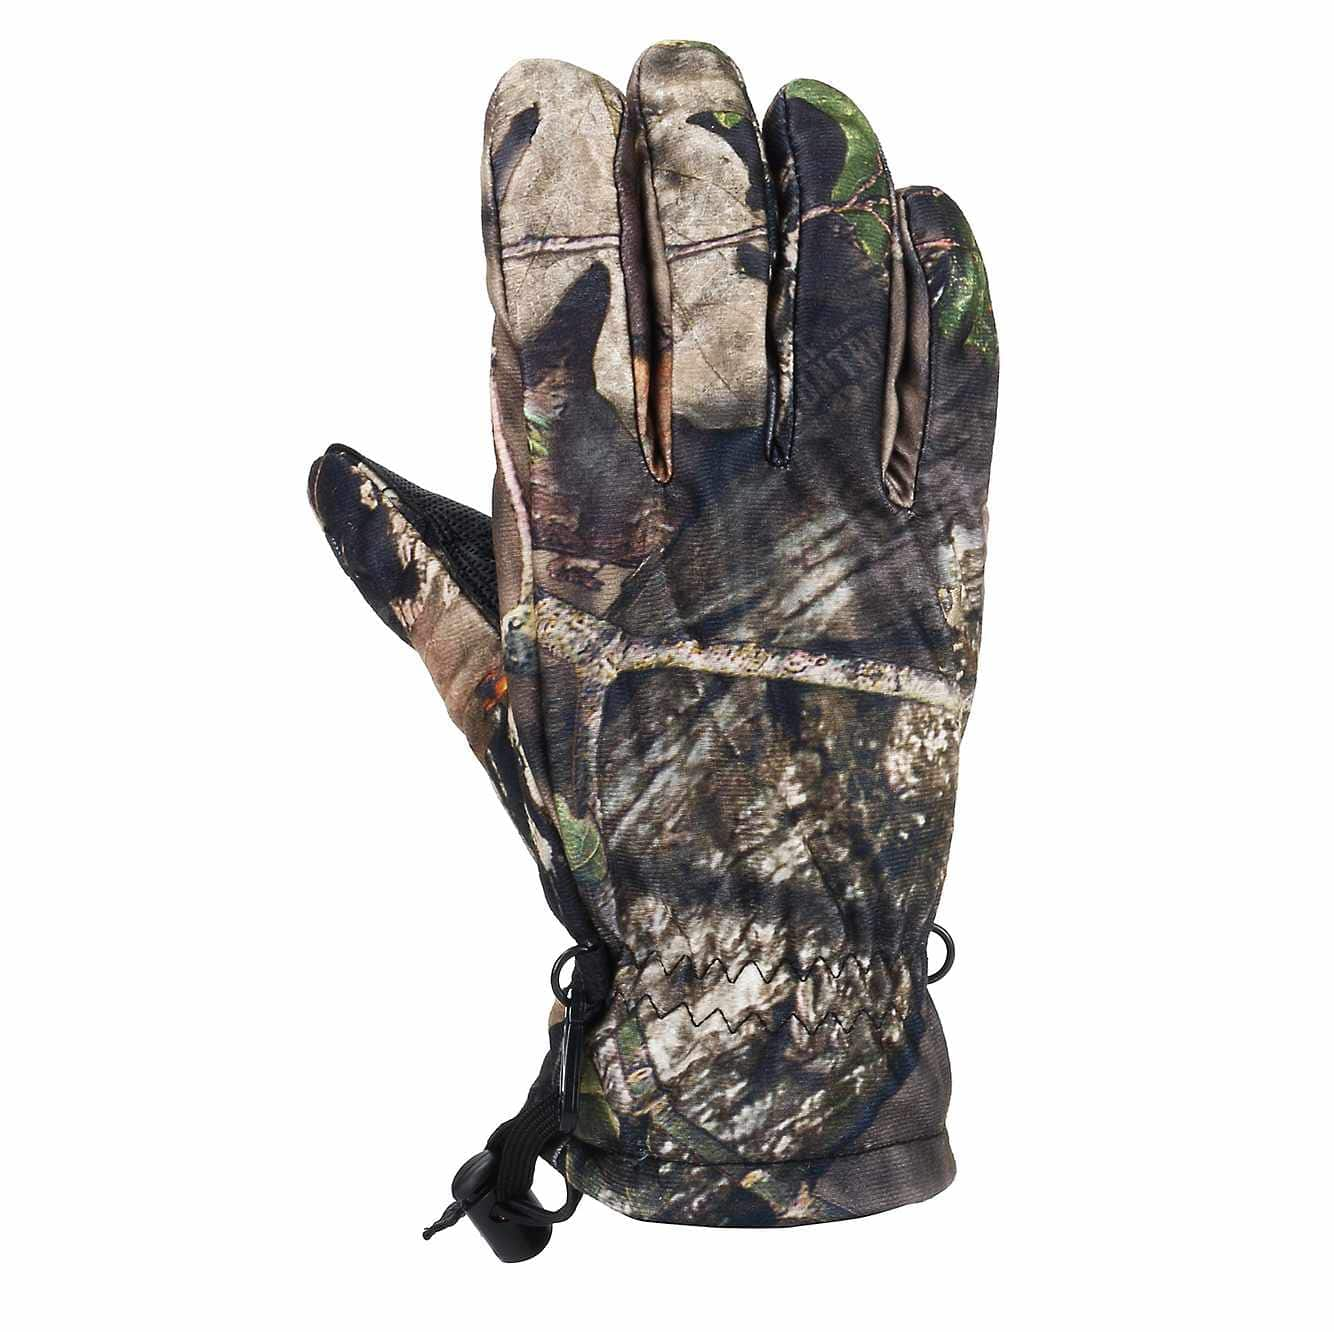 Picture of Magnet Camo Glove in Mossy Oak